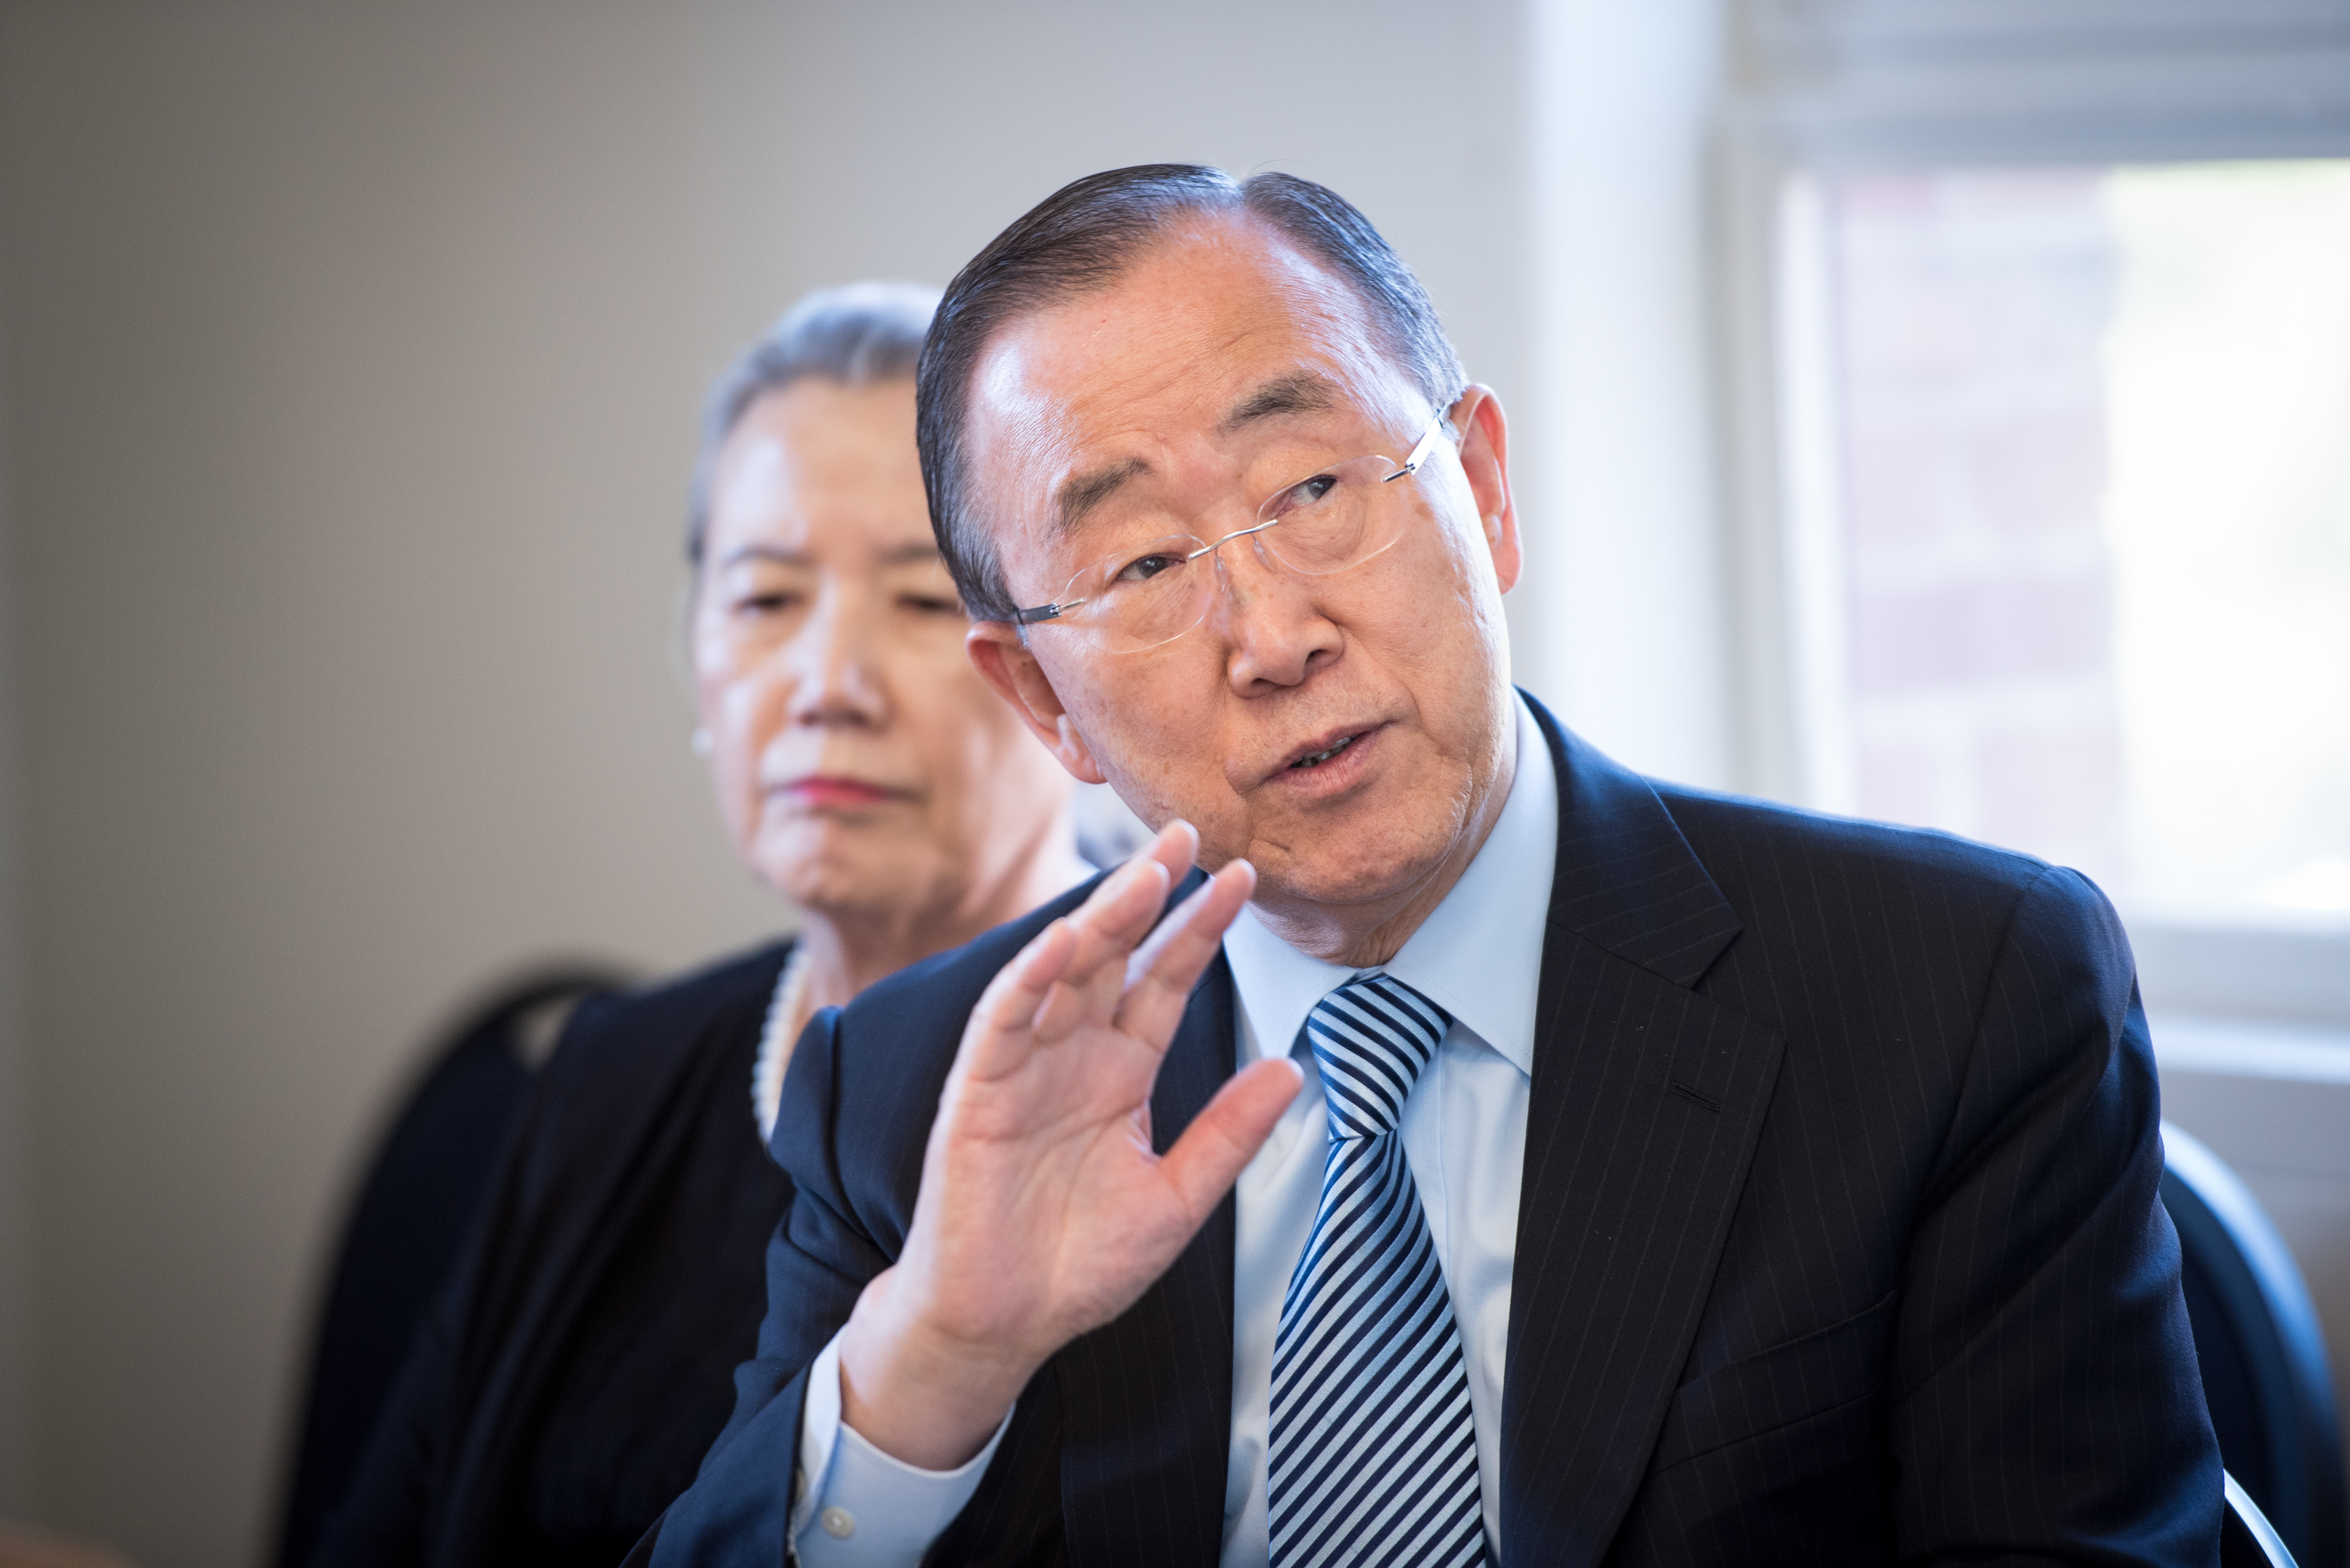 Ban Ki-moon, former UN Secretary General